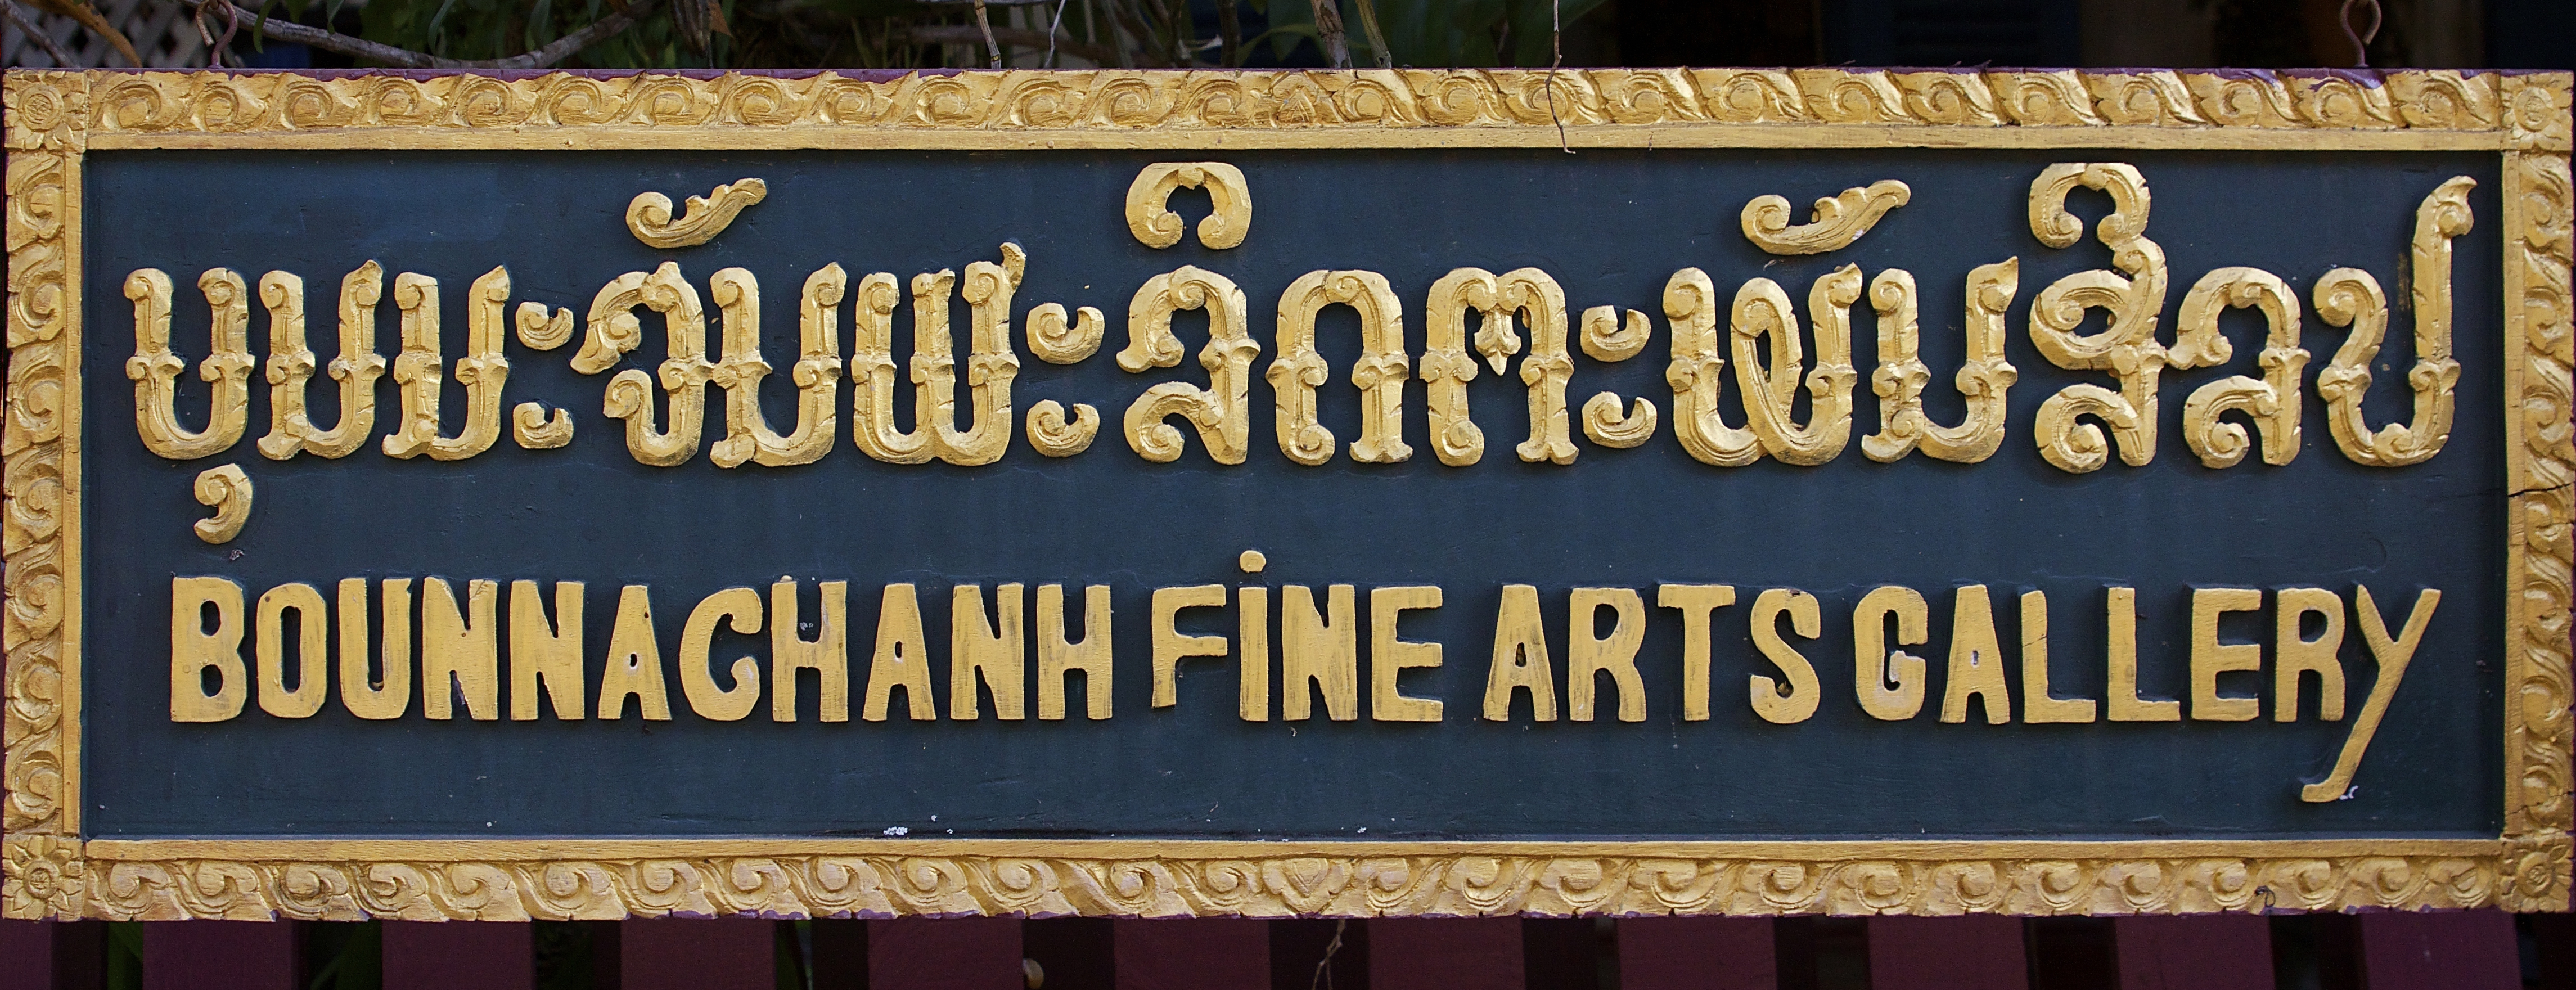 Bounnachanh Fine Arts Gallery